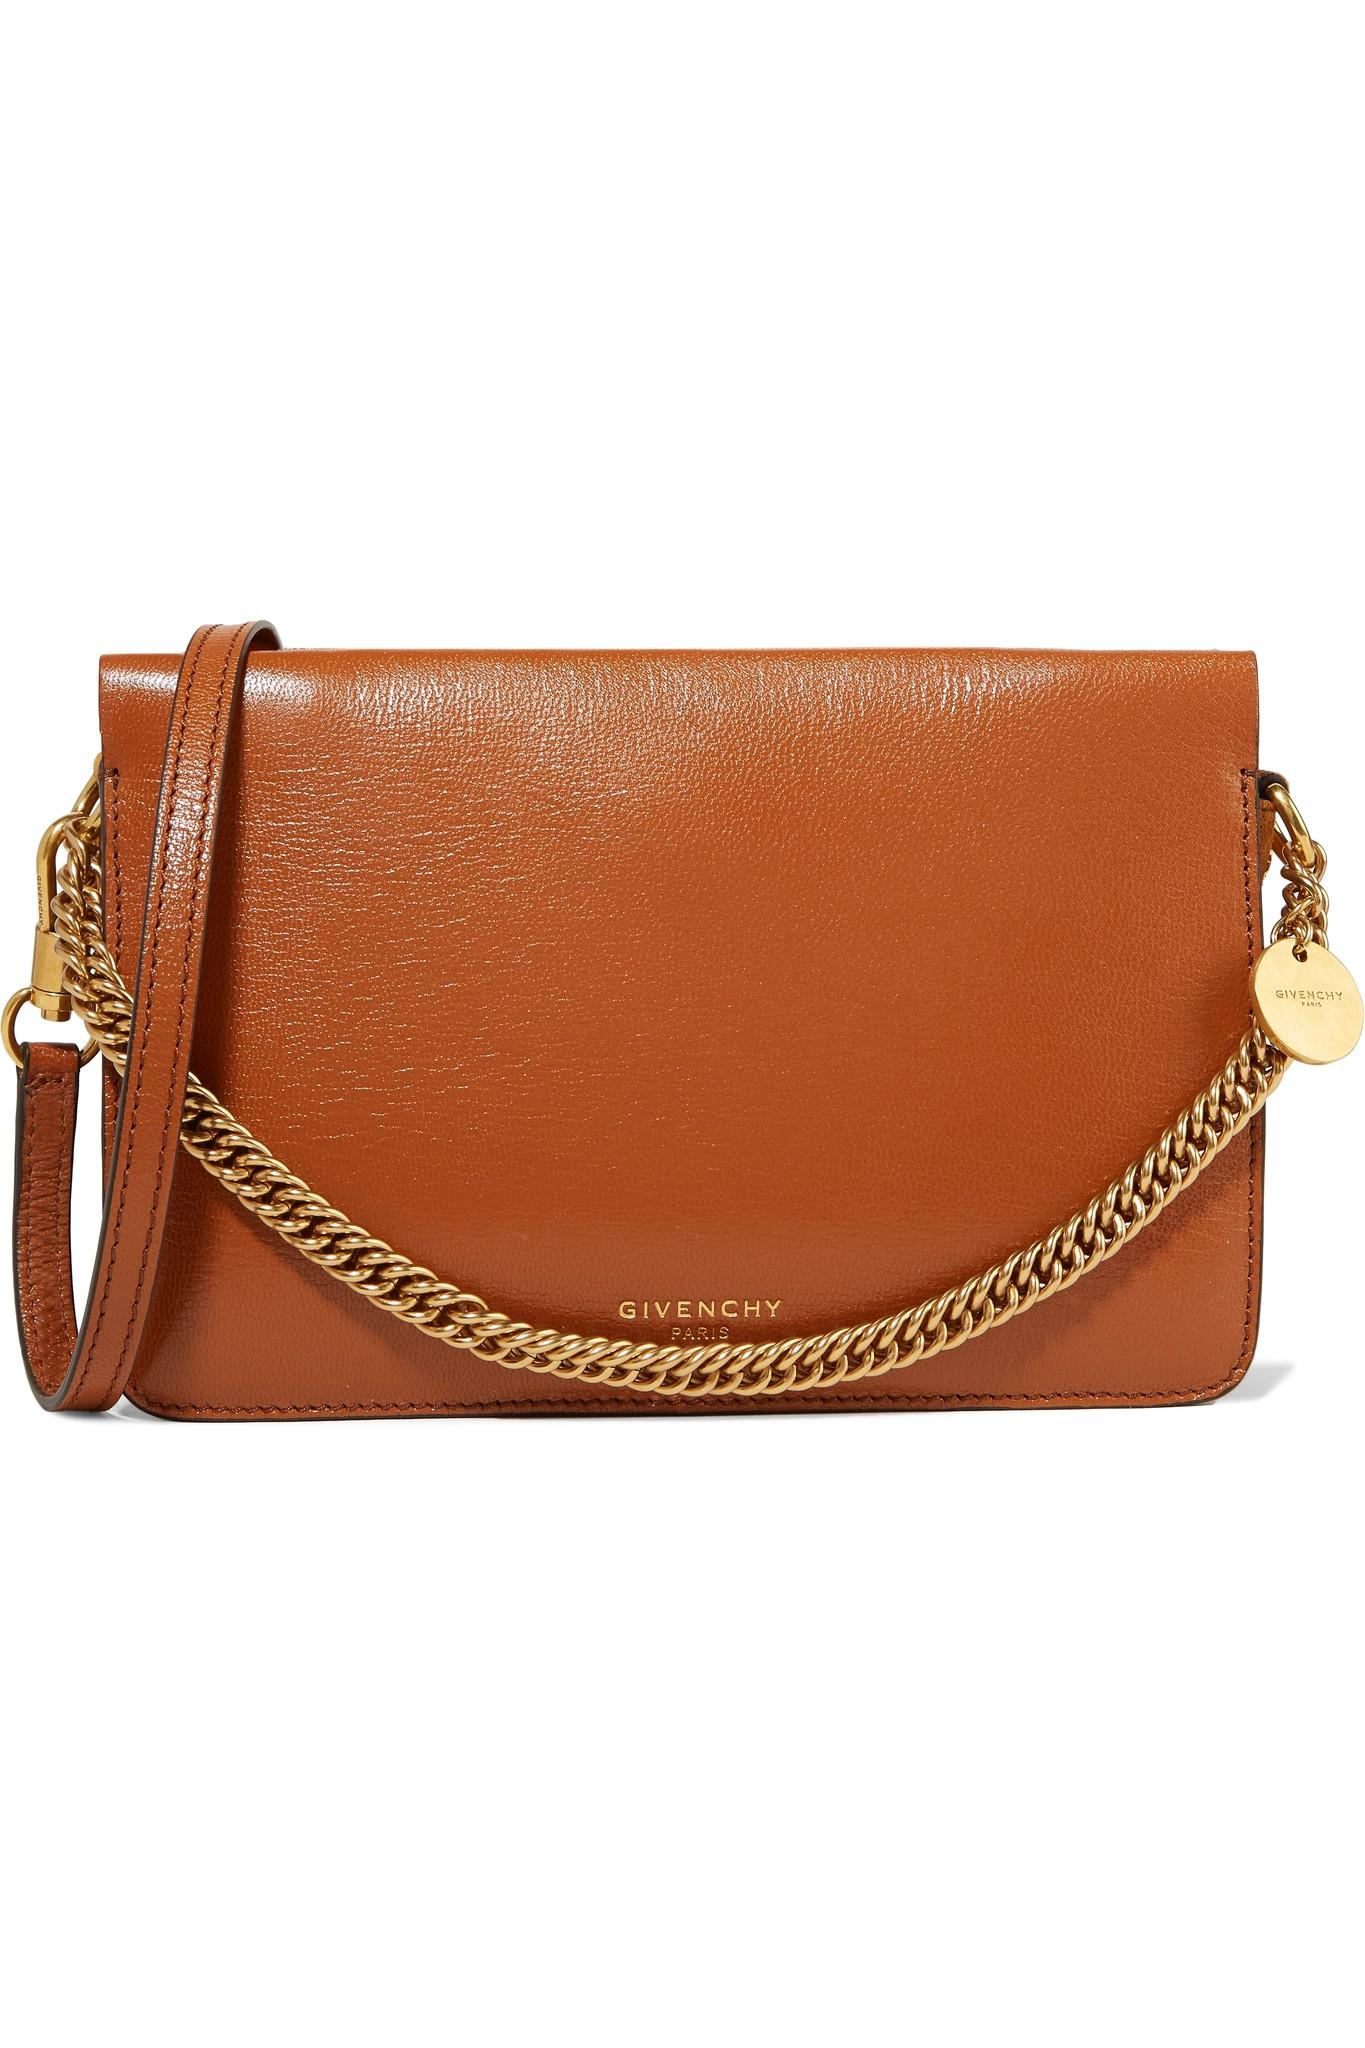 9db092aa2764 Givenchy - Brown Gv Cross Suede-trimmed Leather Shoulder Bag - Lyst. View  fullscreen